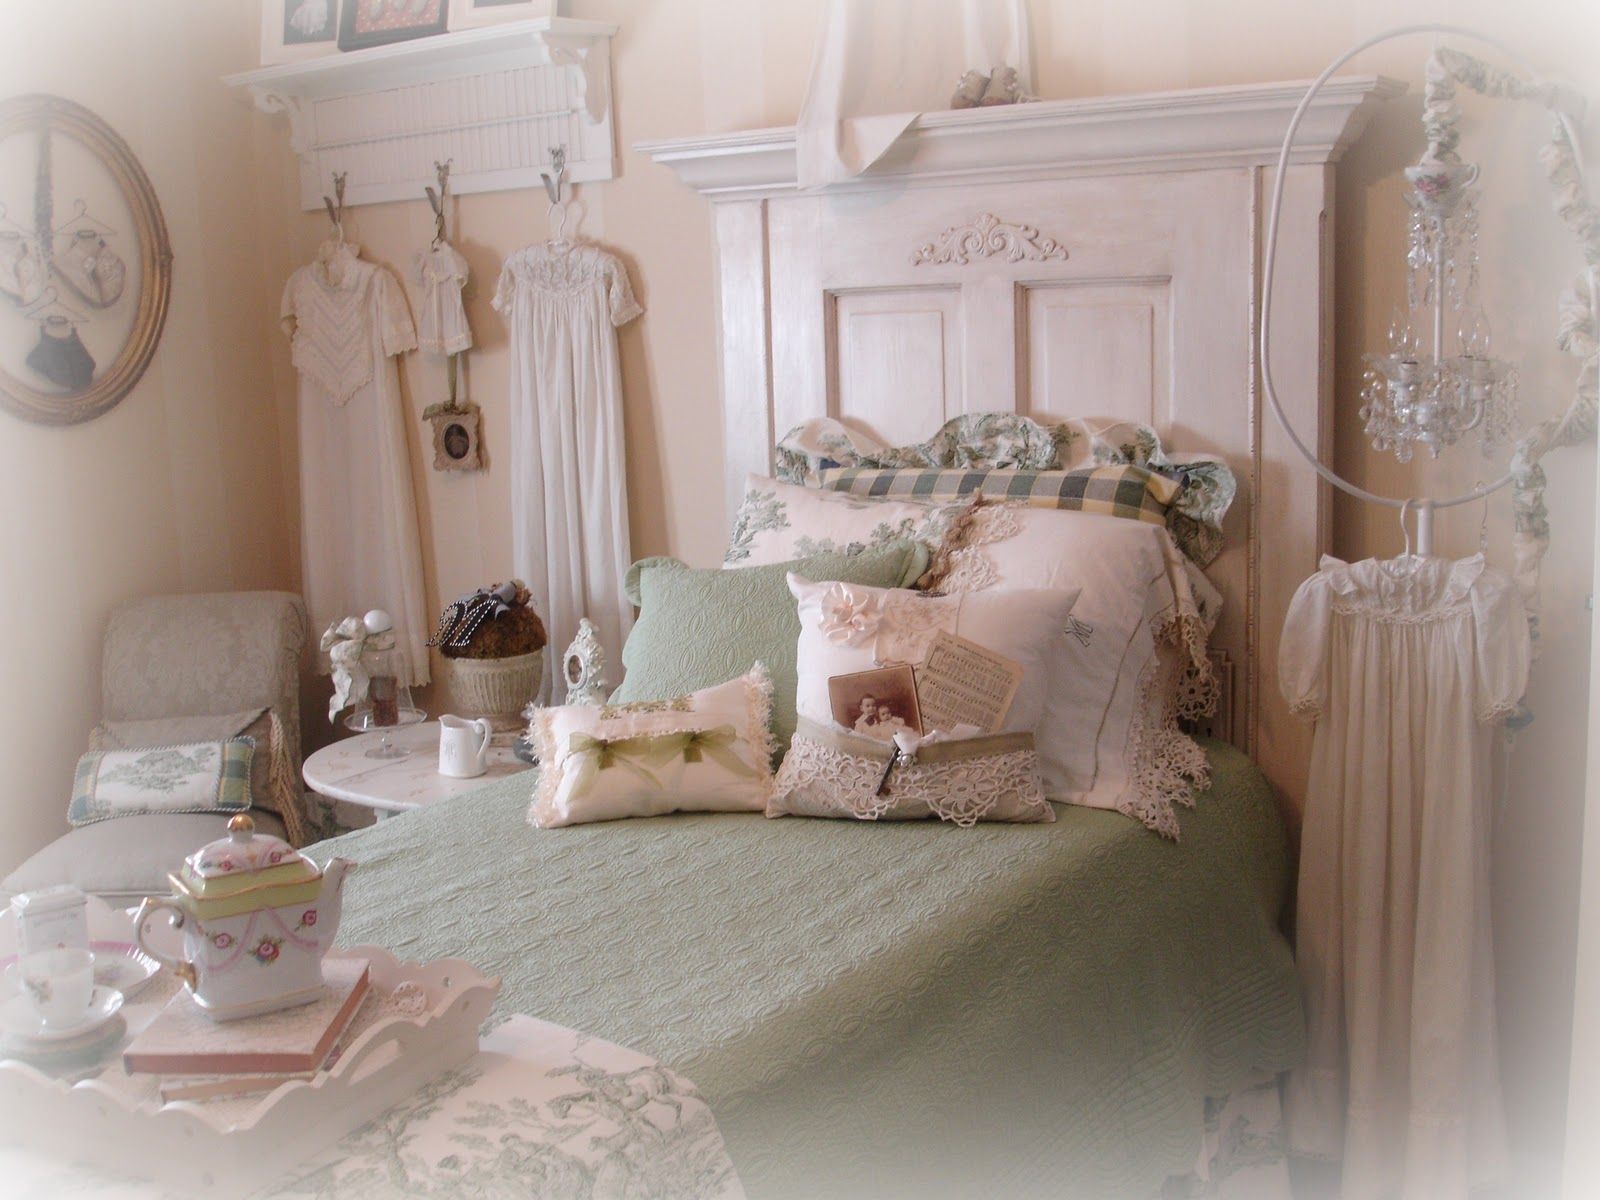 Bedroom Decorating Ideas Totally Toile: Forever Decorating!: Green Toile Guest Bedroom